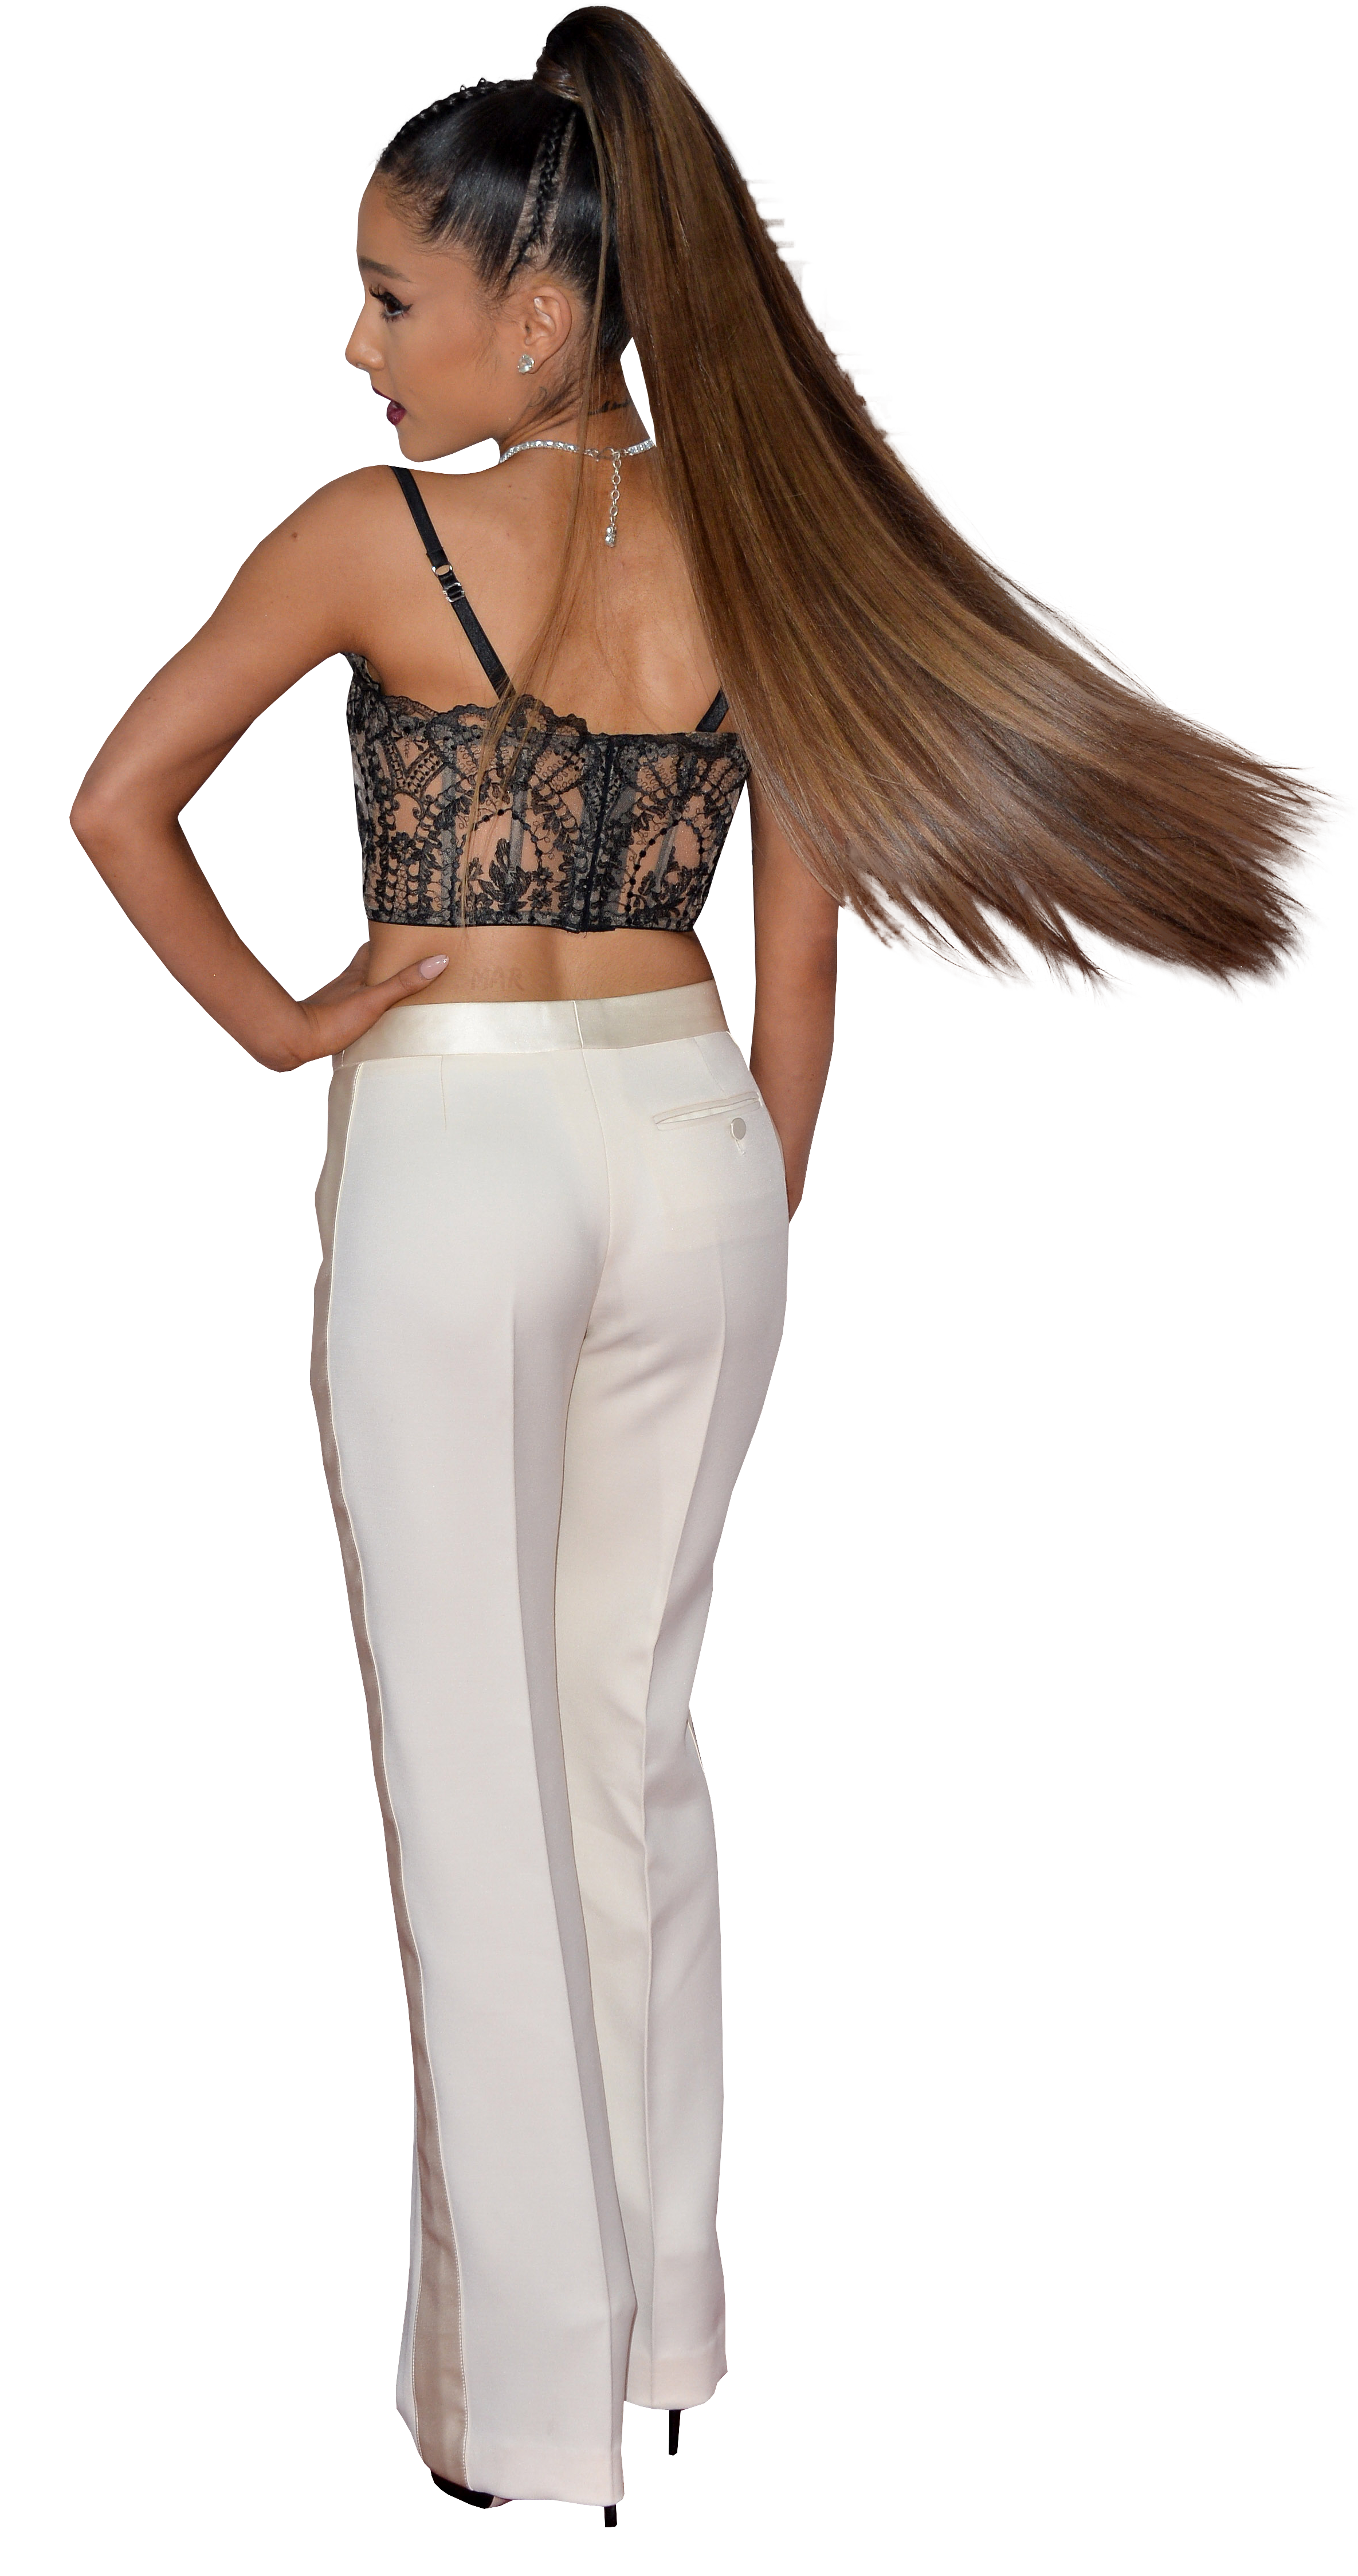 Ariana Grande in white trousers PNG Image.